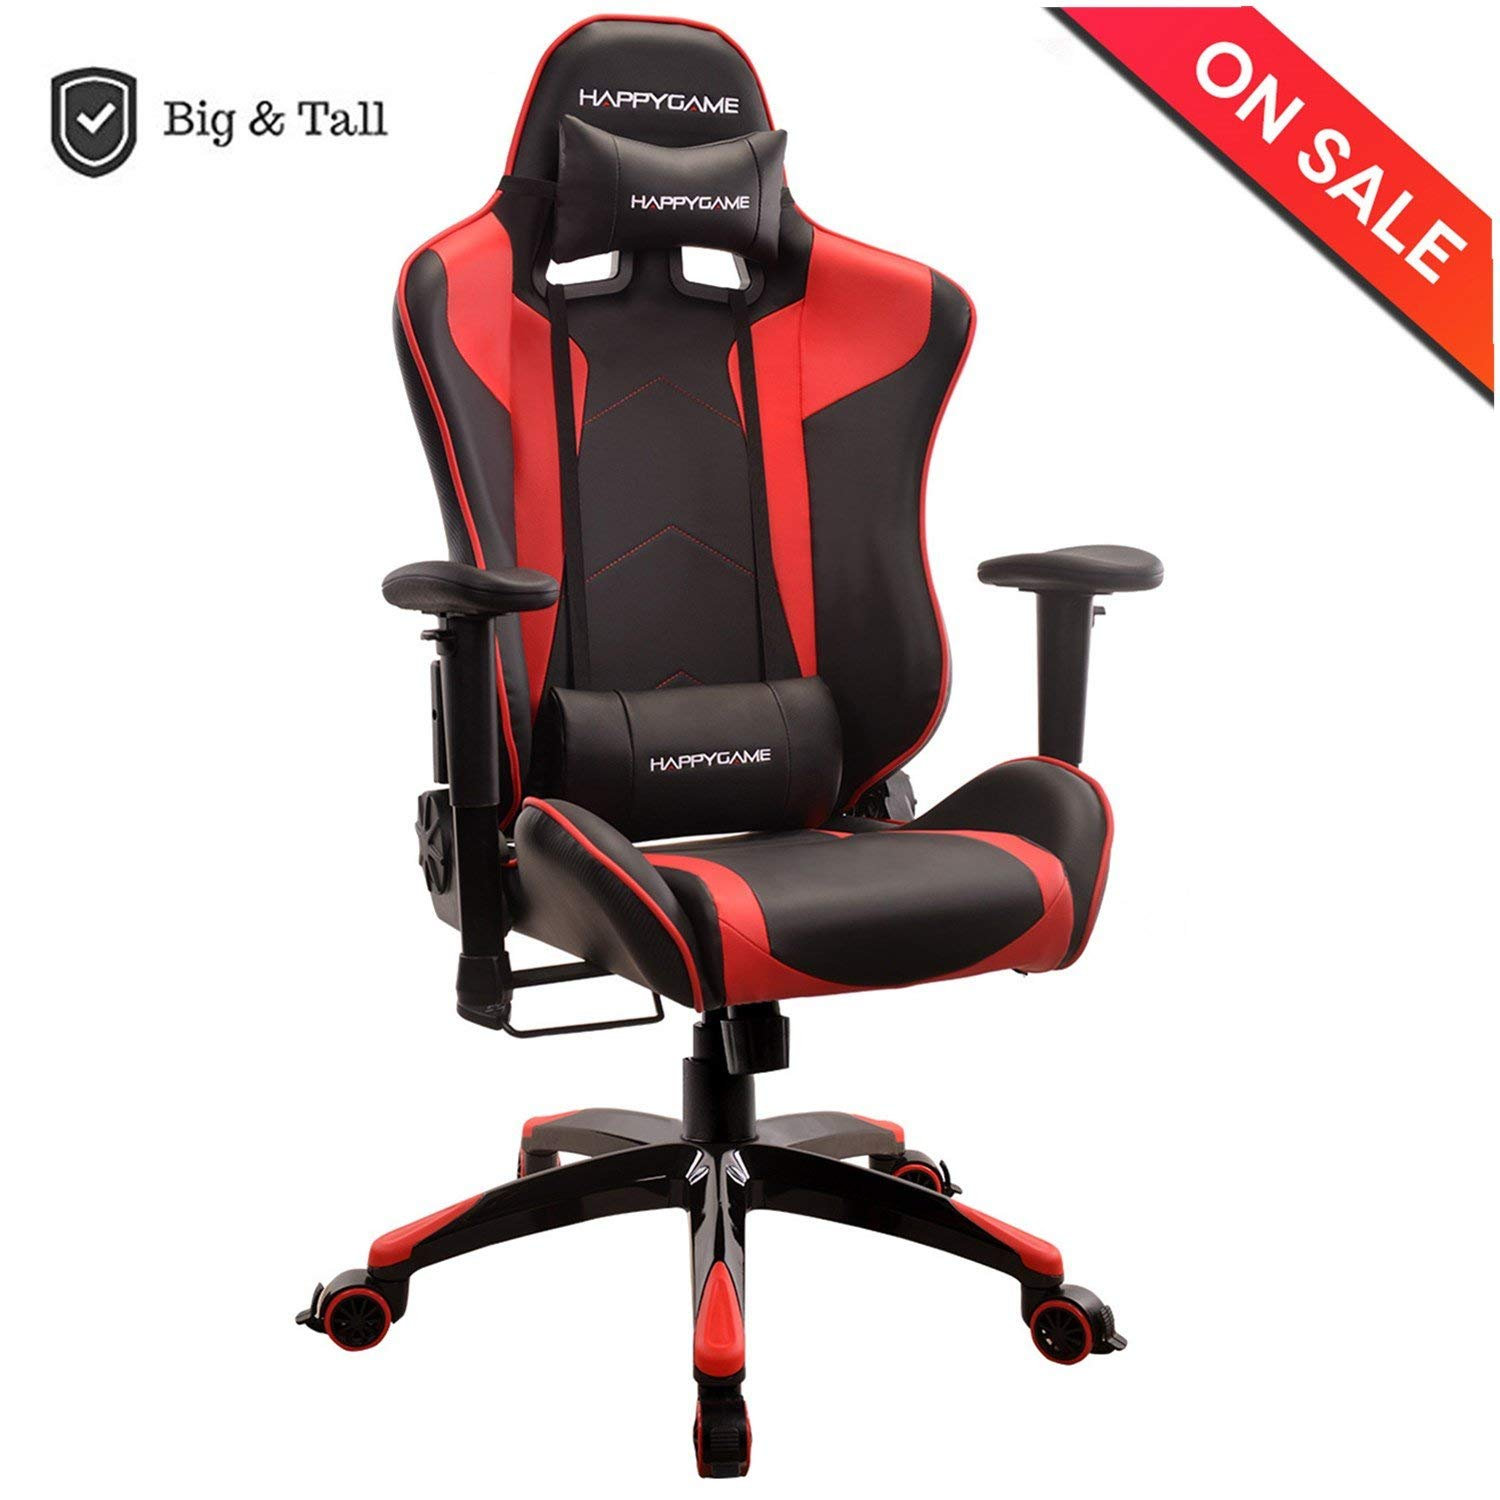 heavy duty gaming chair white outside chairs happygame oversized 400 lbs capacity racing high back ergonomic swivel computer executive office with headrest and lumbar support